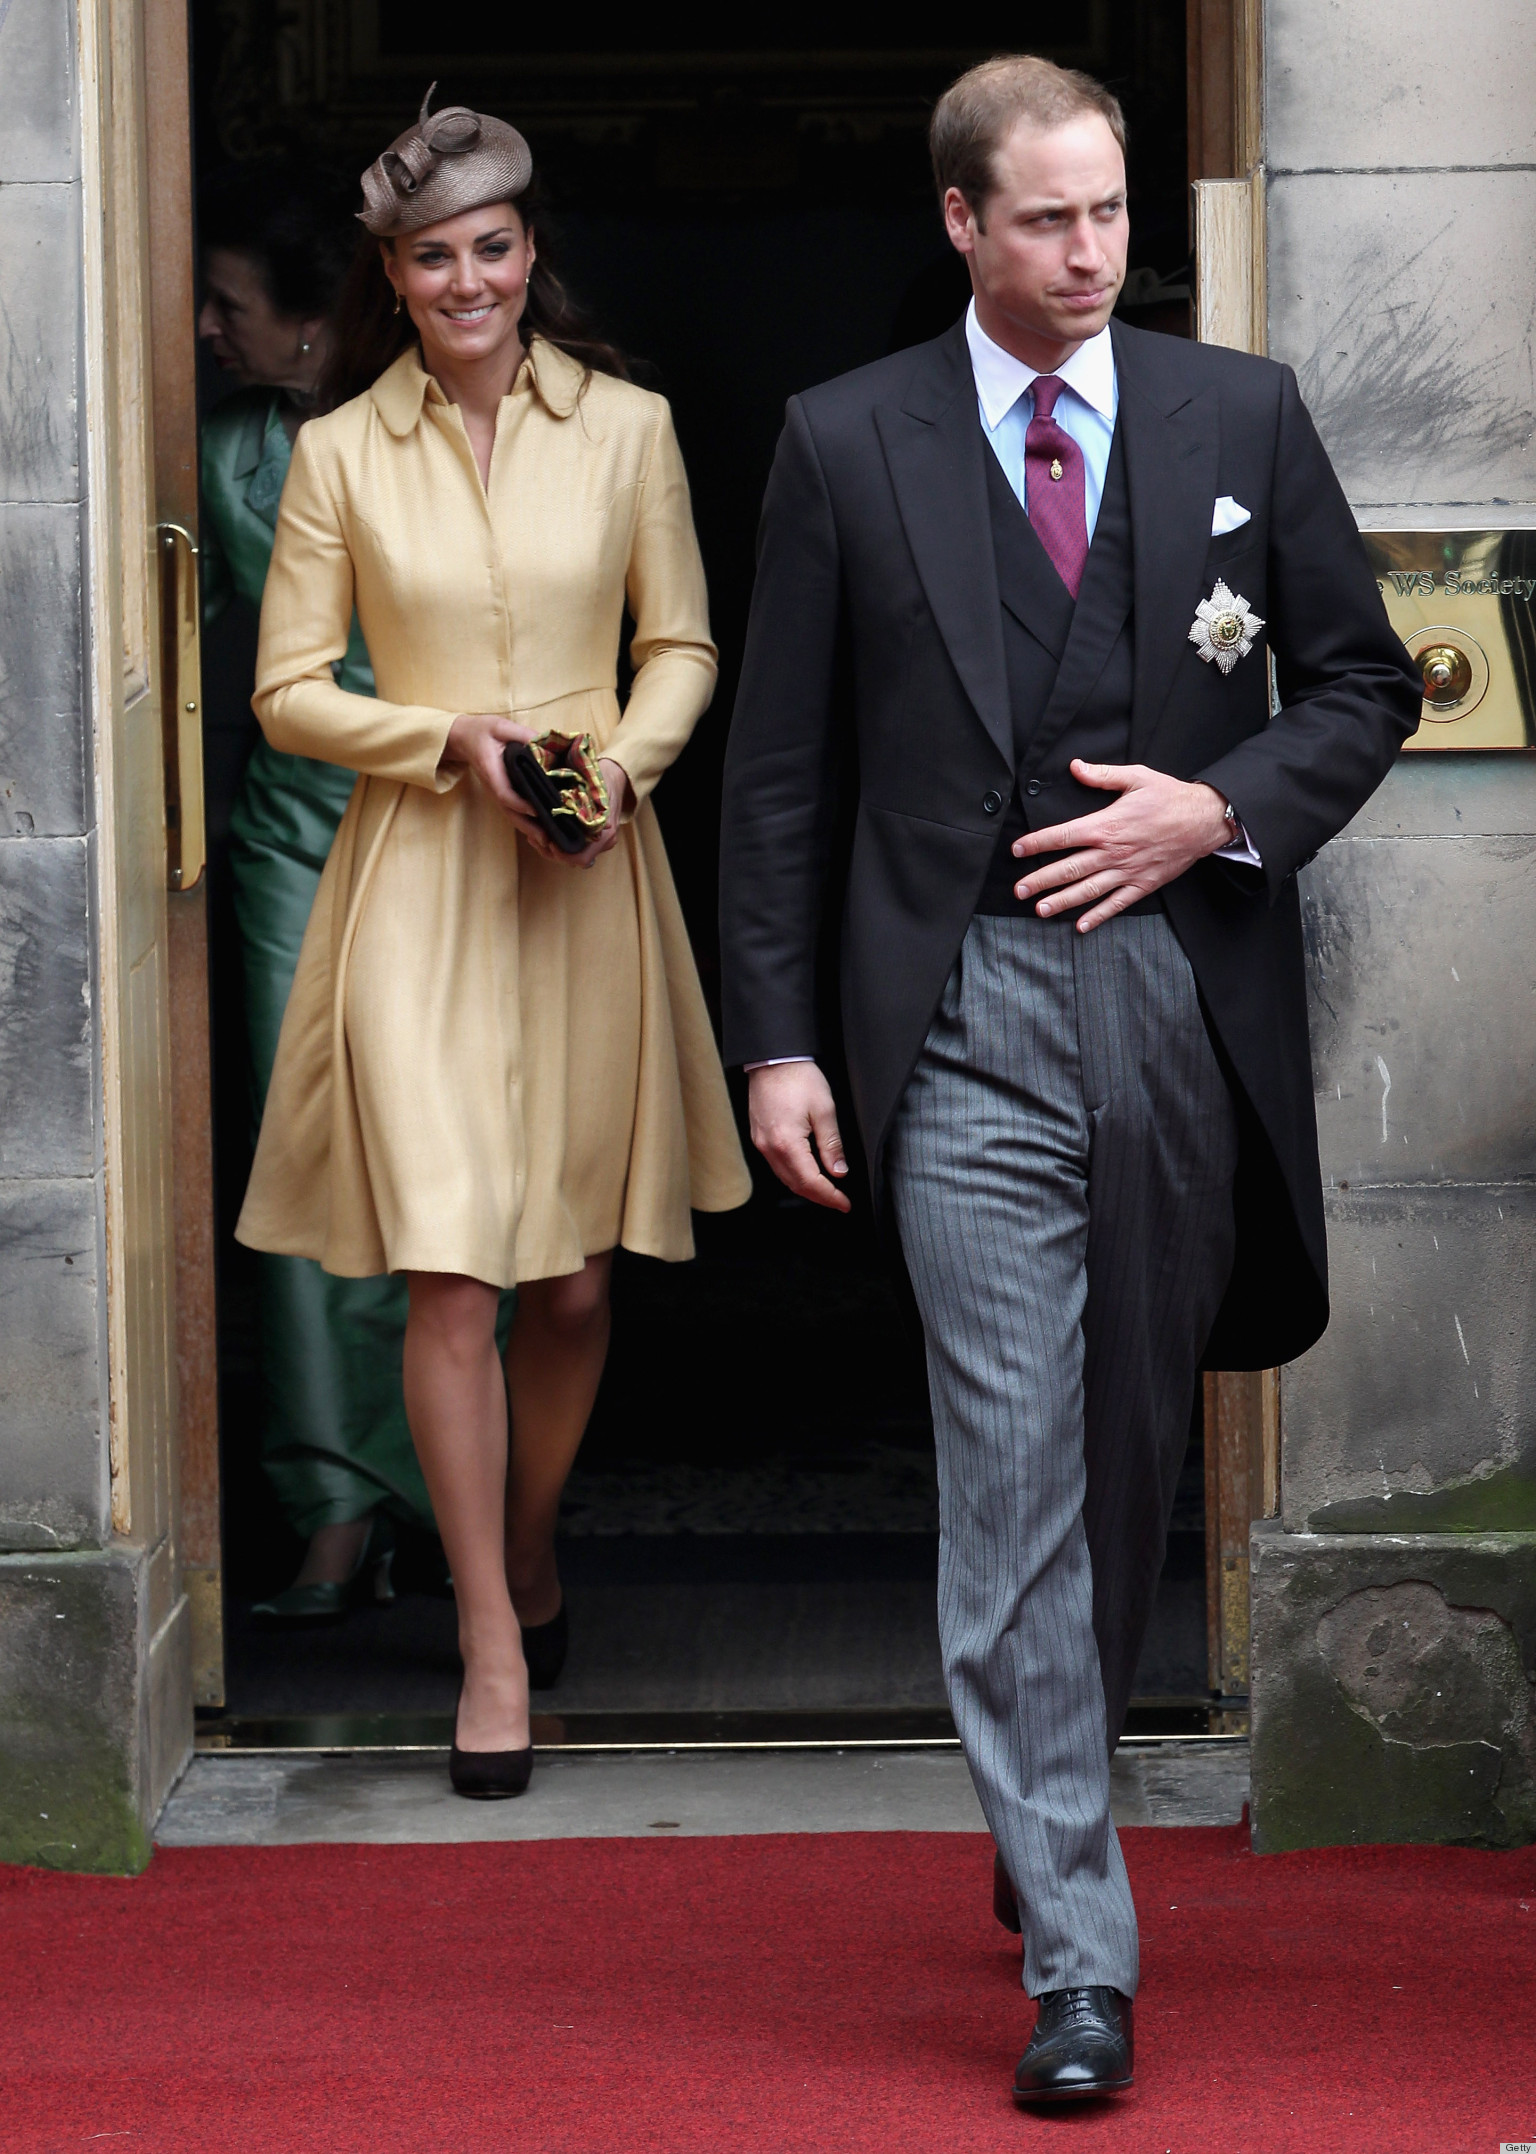 Prince William And Kate Middleton Renovating Anmer Hall ...